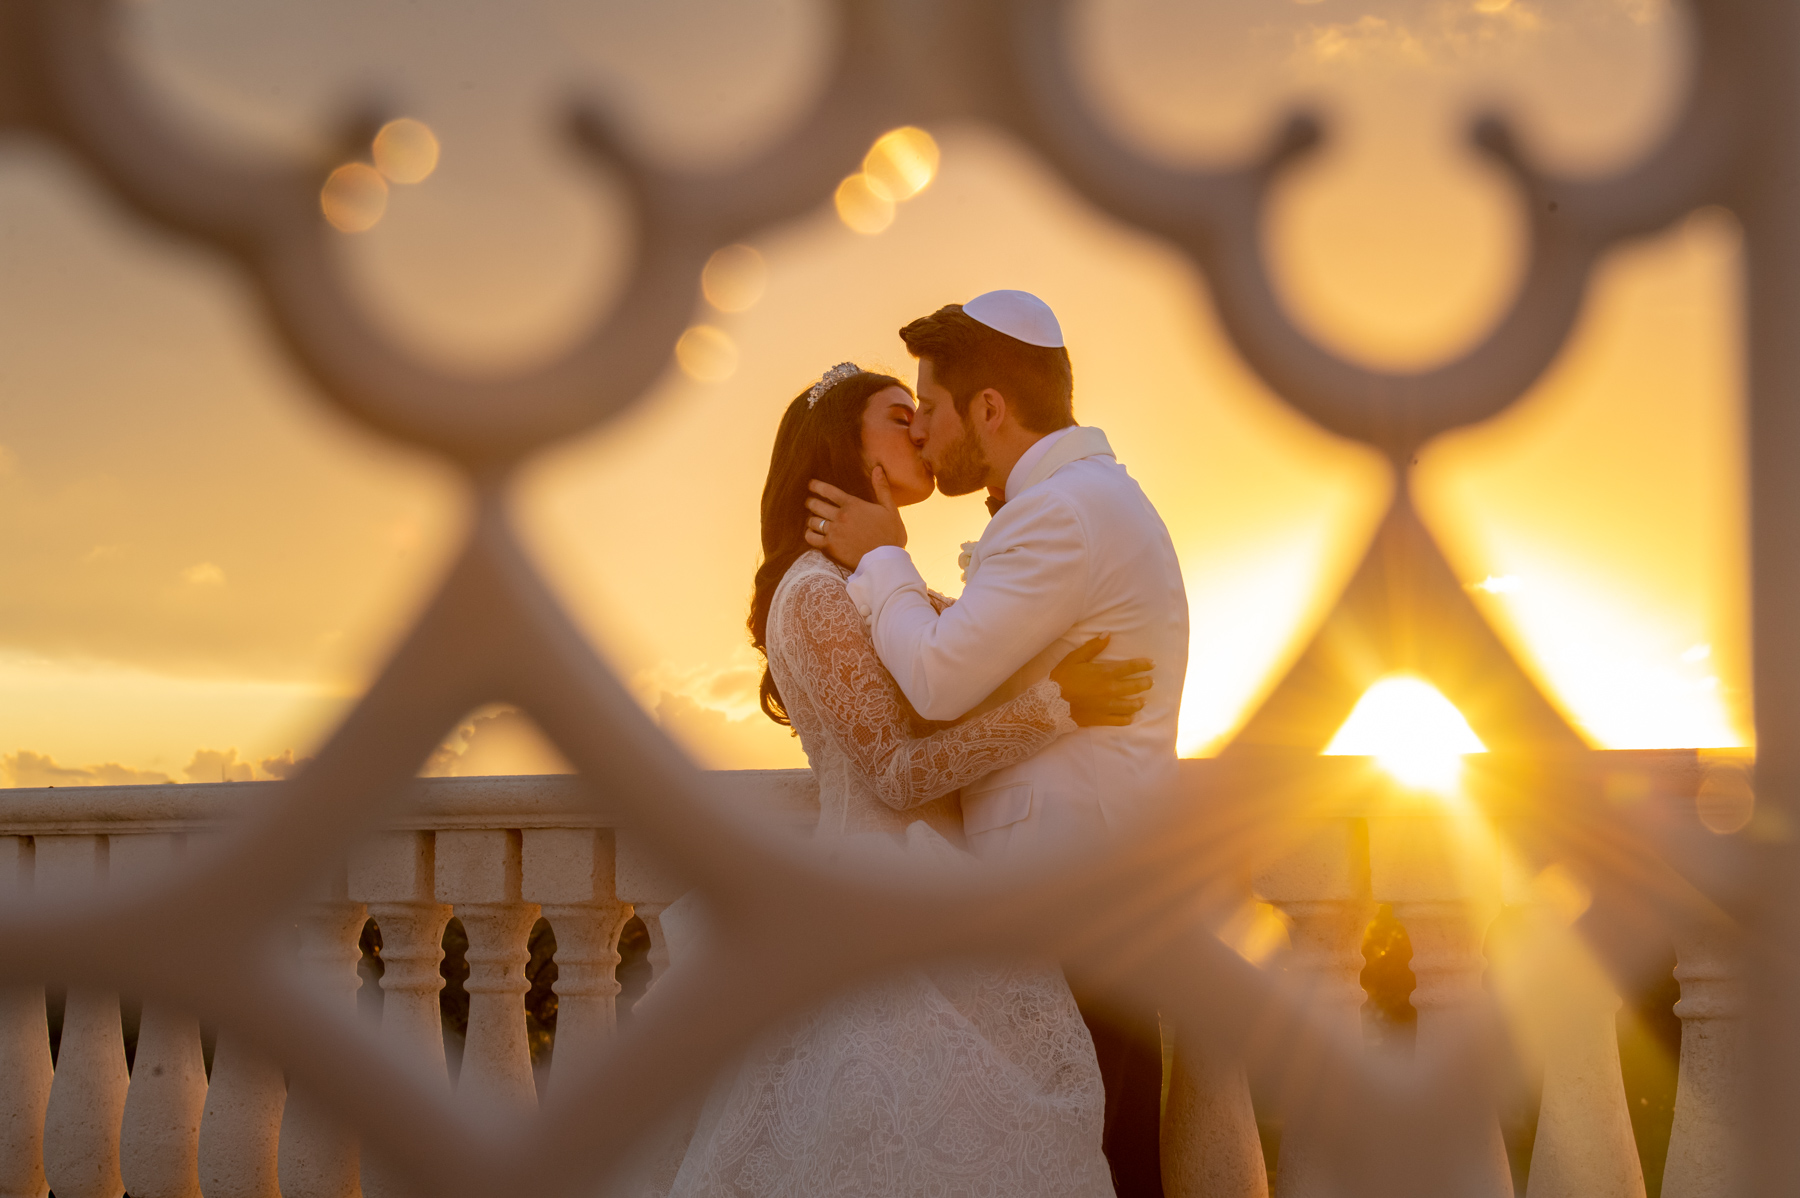 Perfect Sunset wedding at Trump Doral Miami by Domino Arts Photography